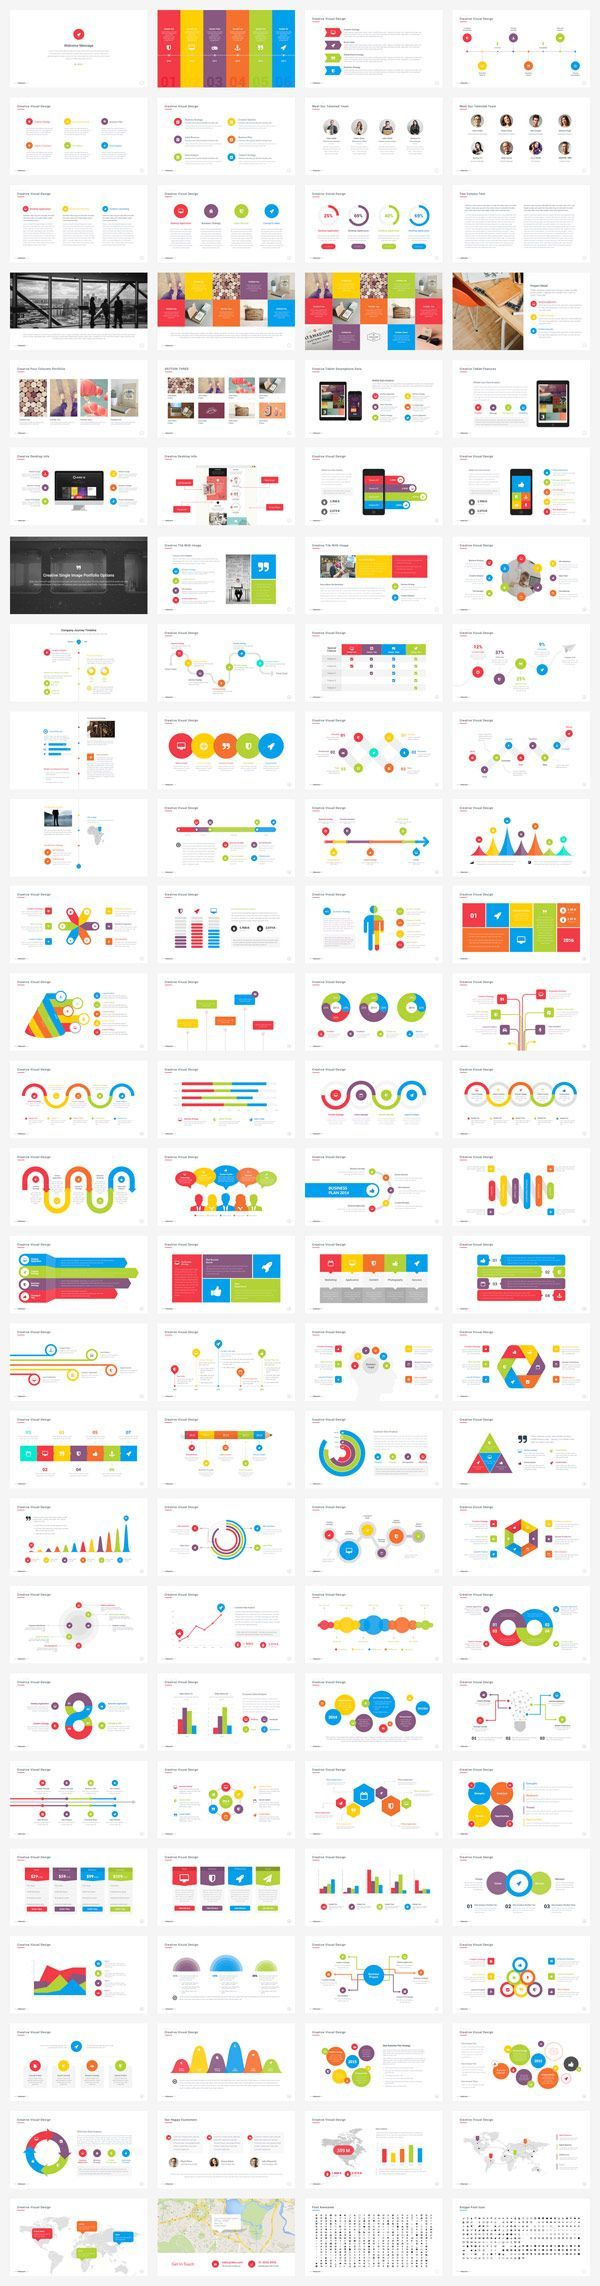 Pro Powerpoint Presentation Template Look at all the pre designed slides with colorful infographics, charts, and much more.Look at all the pre designed slides with colorful infographics, charts, and much more.